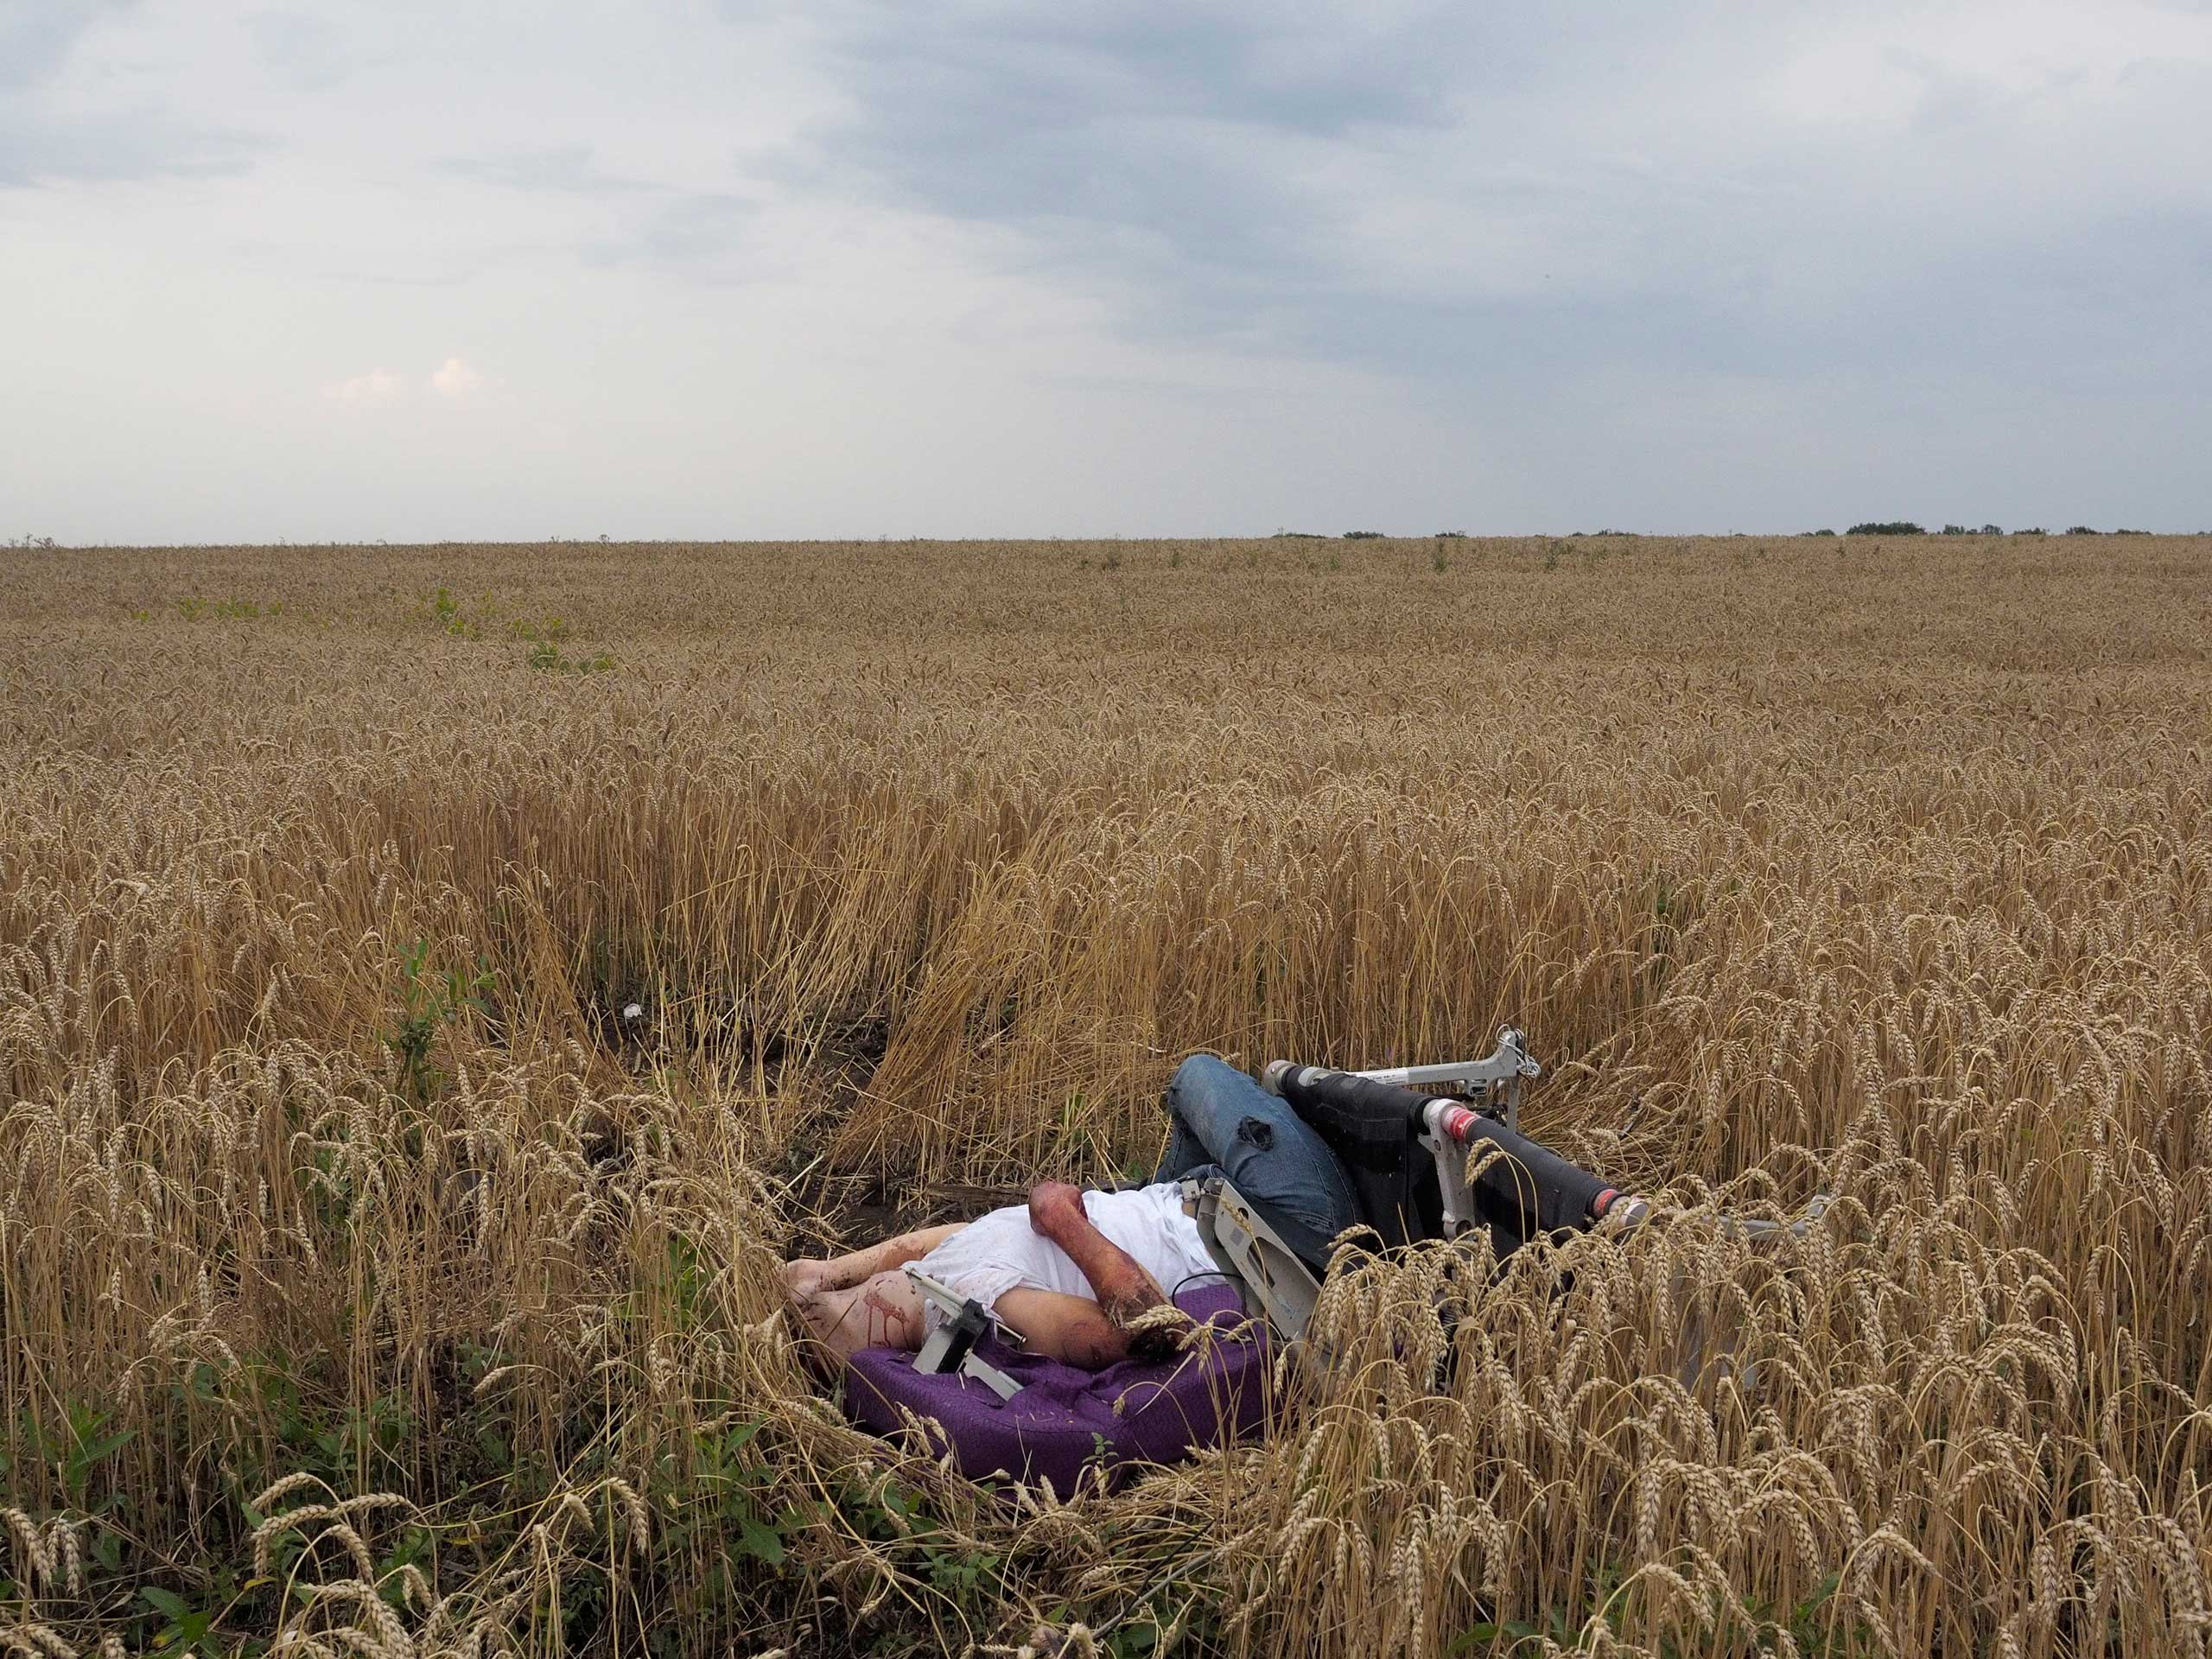 The remains of a passenger on board Malaysia Airlines flight MH17 that was shot over eastern Ukraine, July 17, 2014.